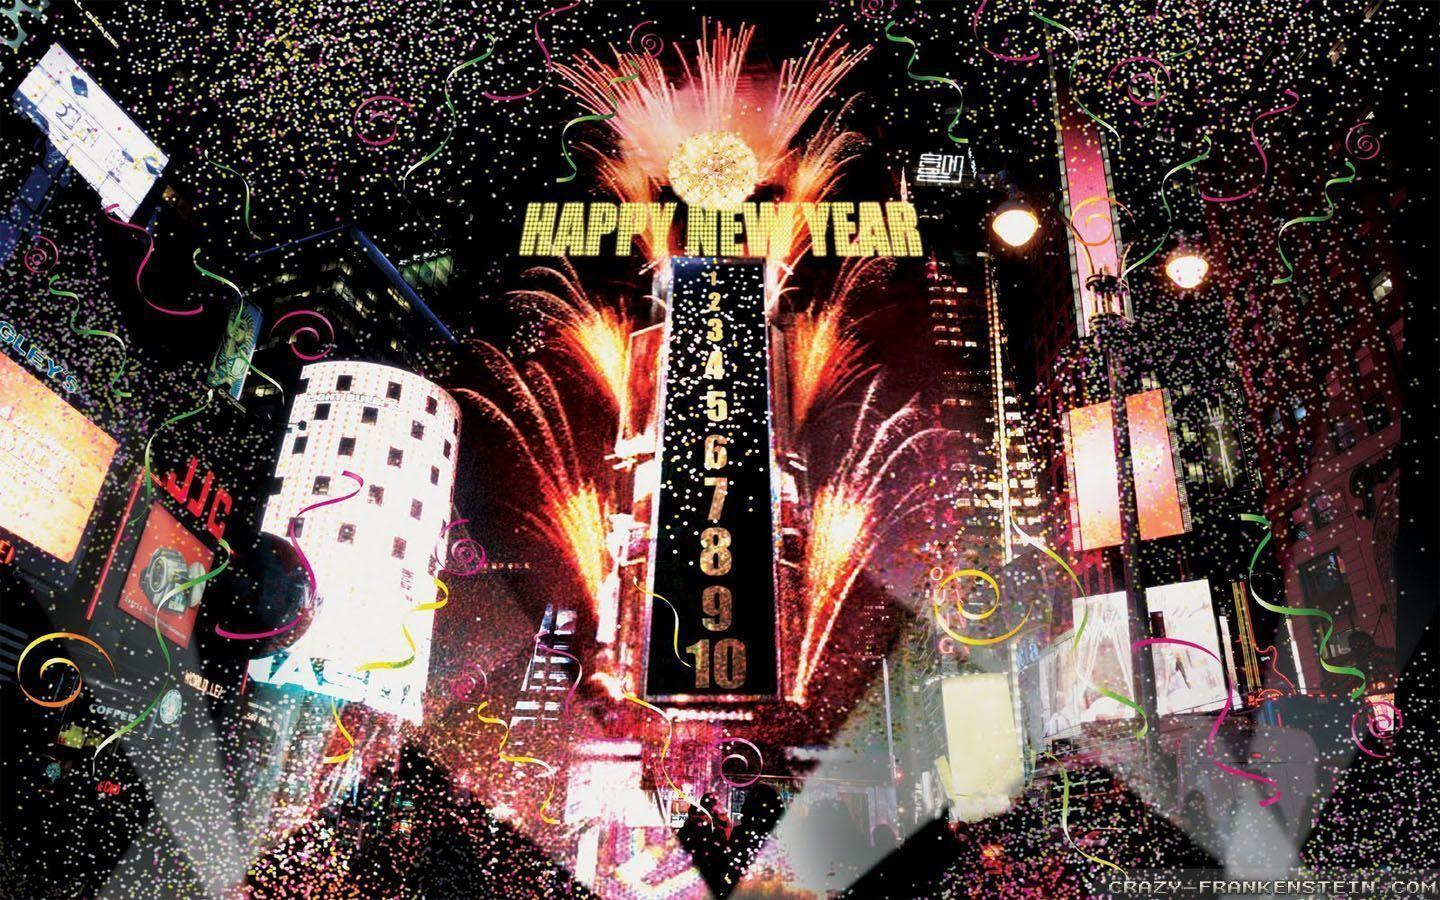 New Year Eve Wallpapers Crazy Frankenstein 1440x900PX ~ New Years